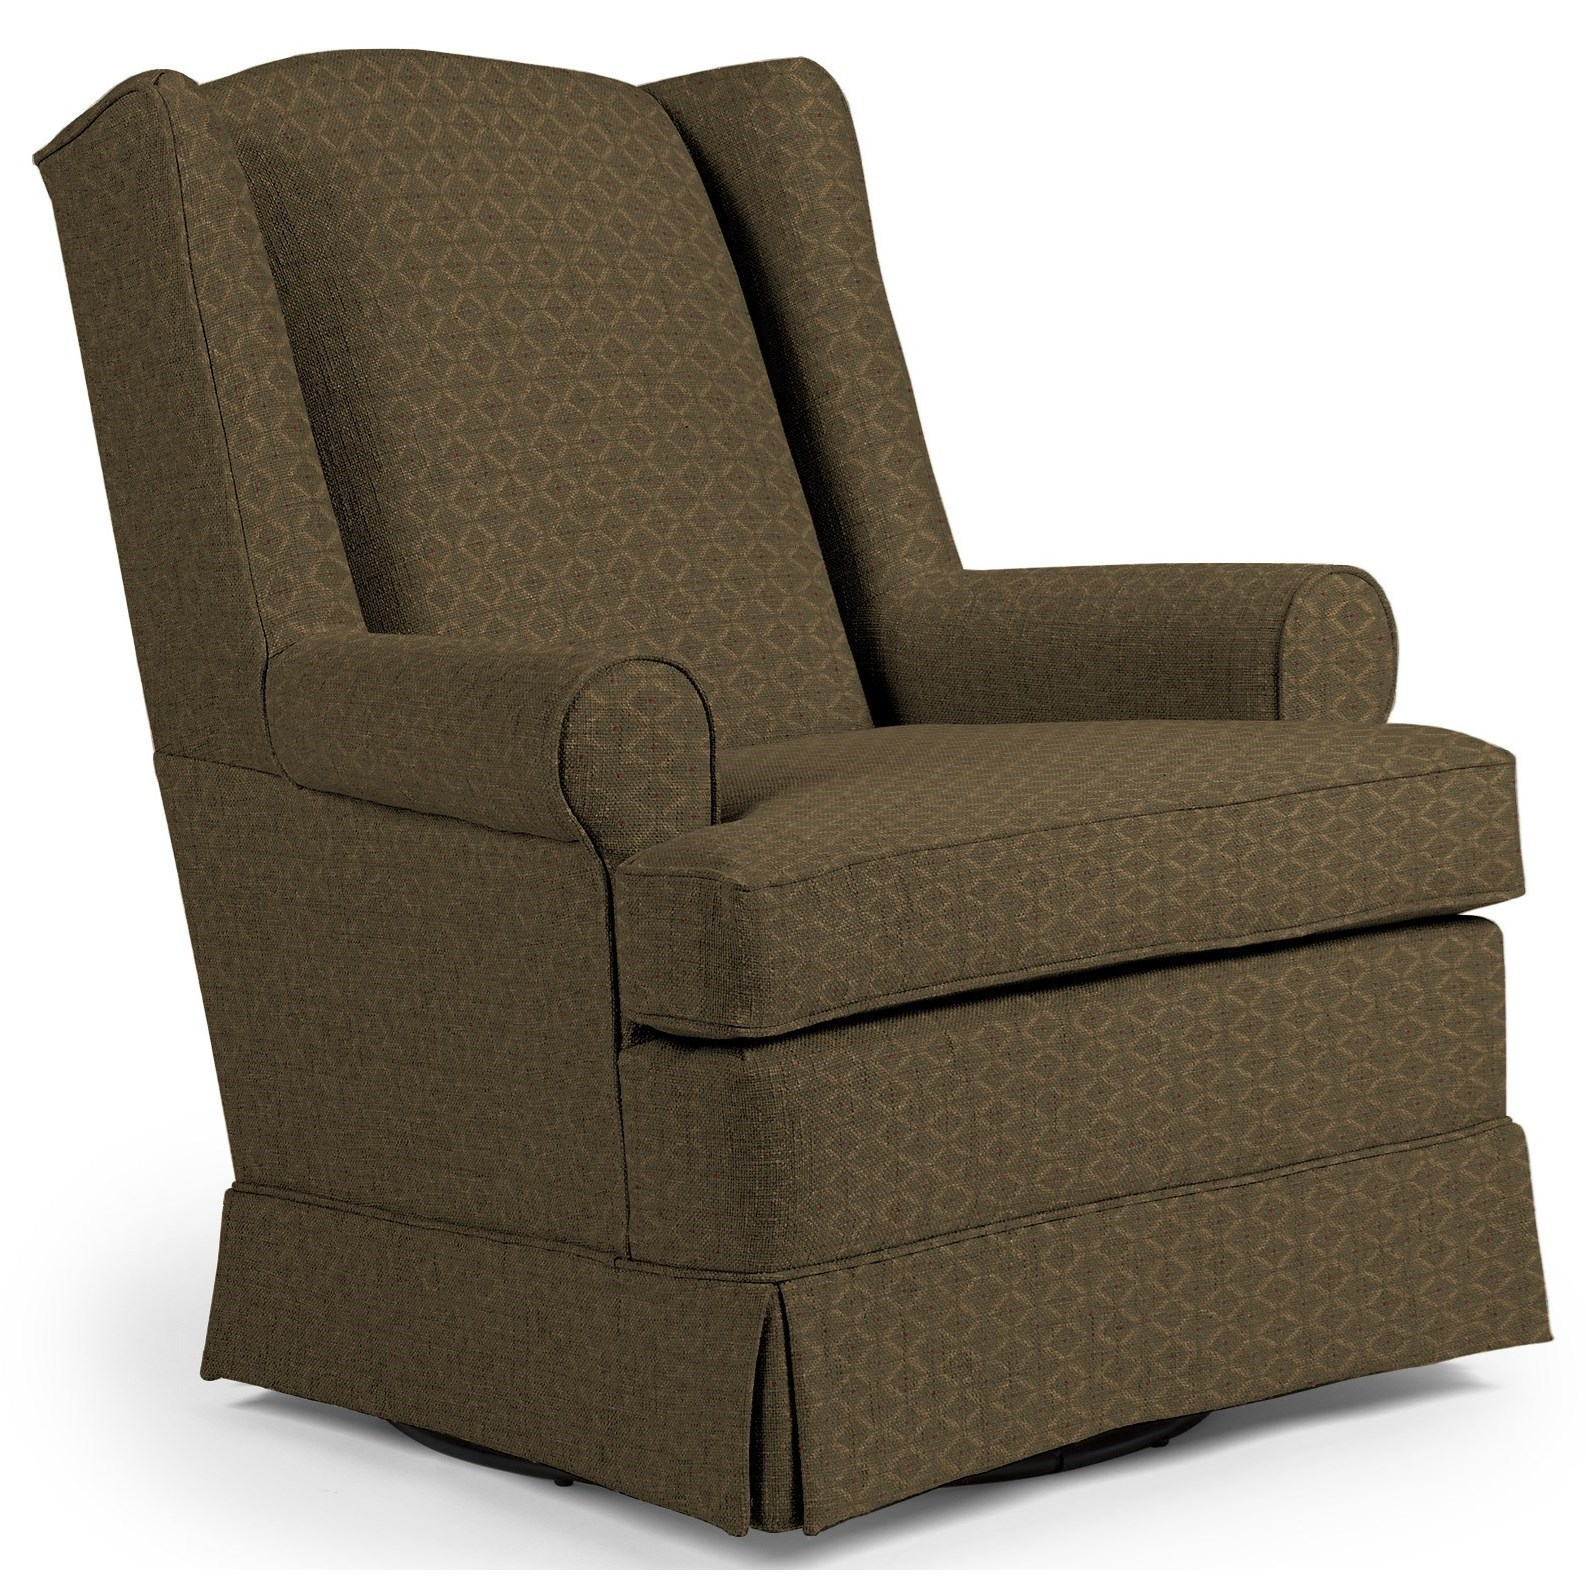 Swivel Glide Chairs Roni Swivel Glider Chair